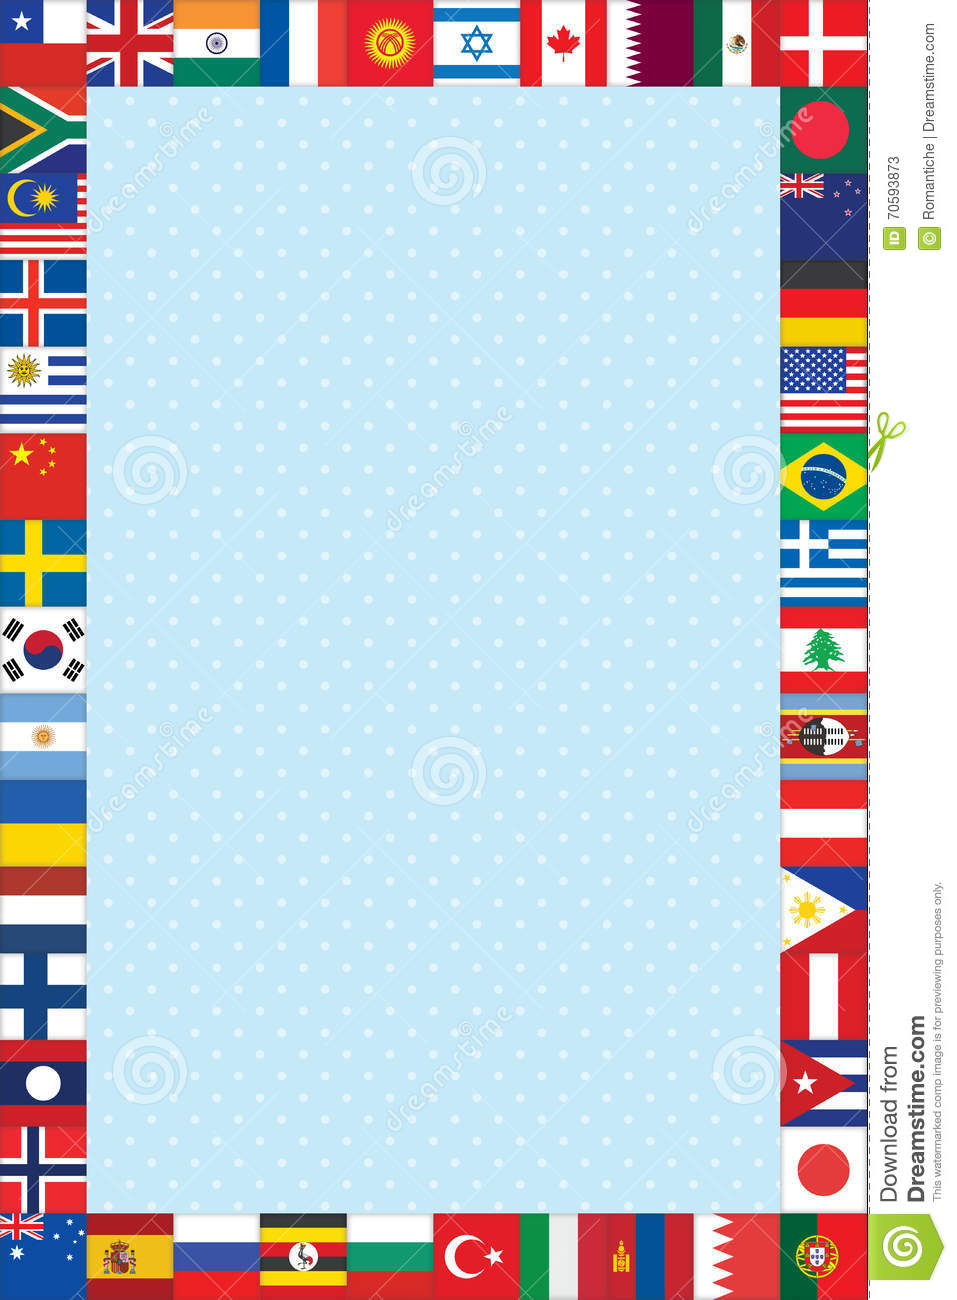 Background With World Flags Frame Stock Vector - Image